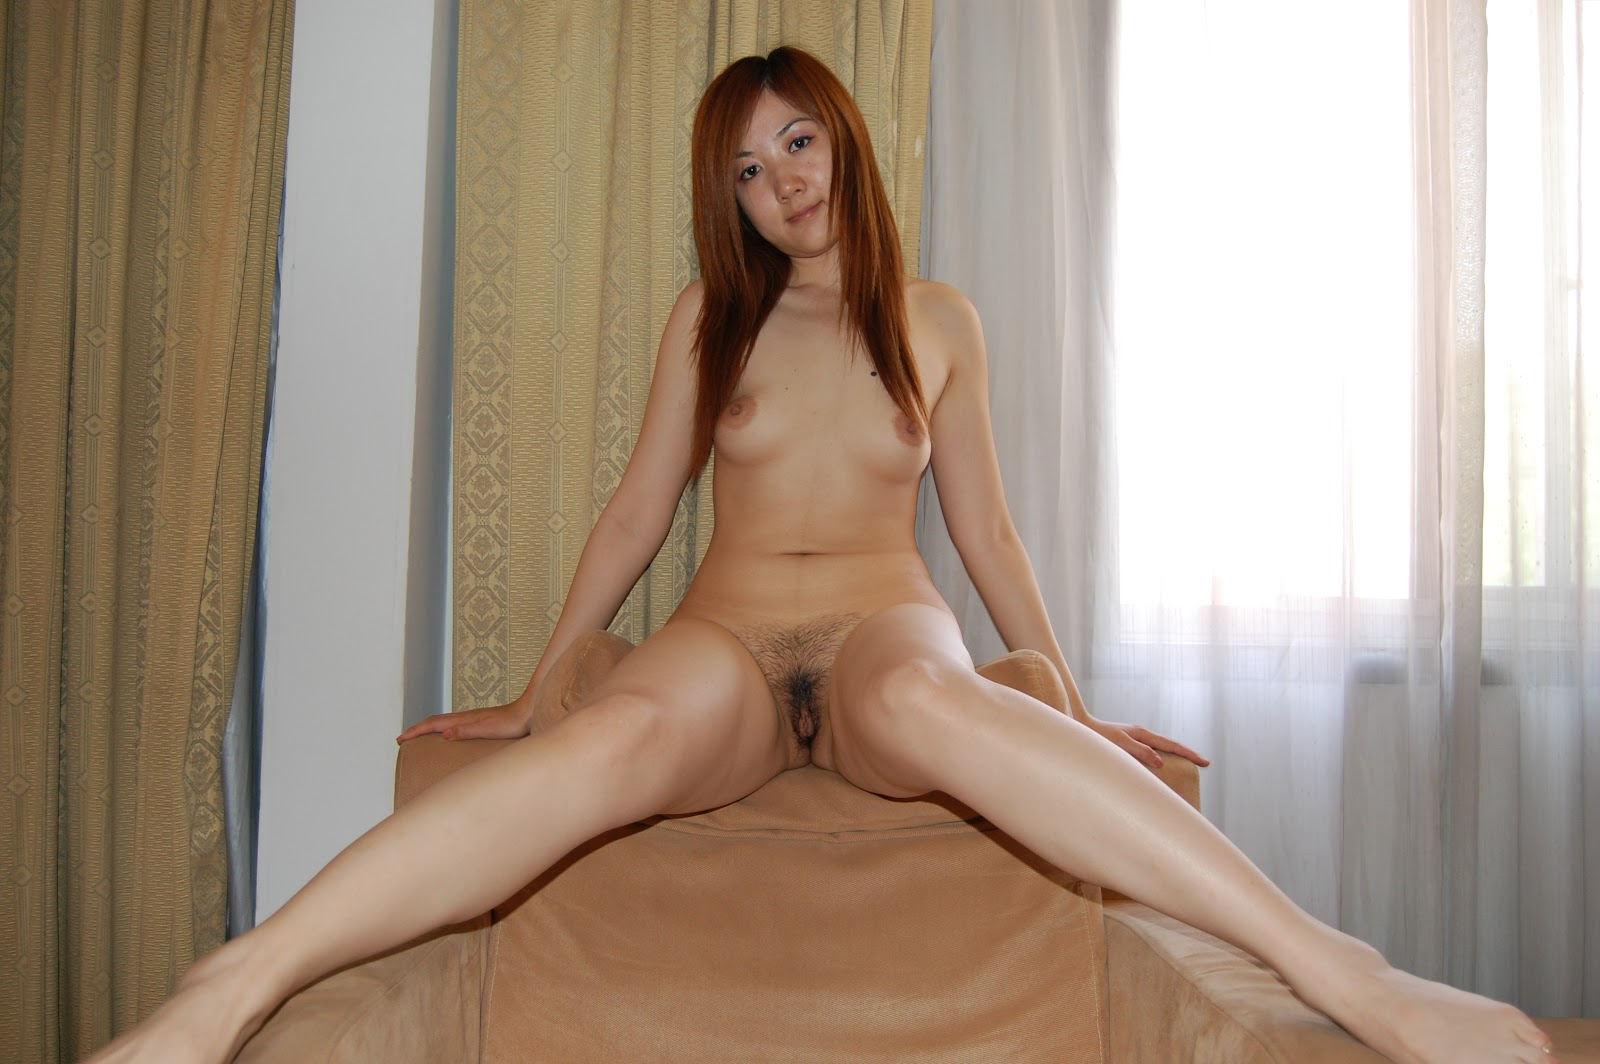 Chinese Nude_Art_Photos_-_274_-_YianYian.rar